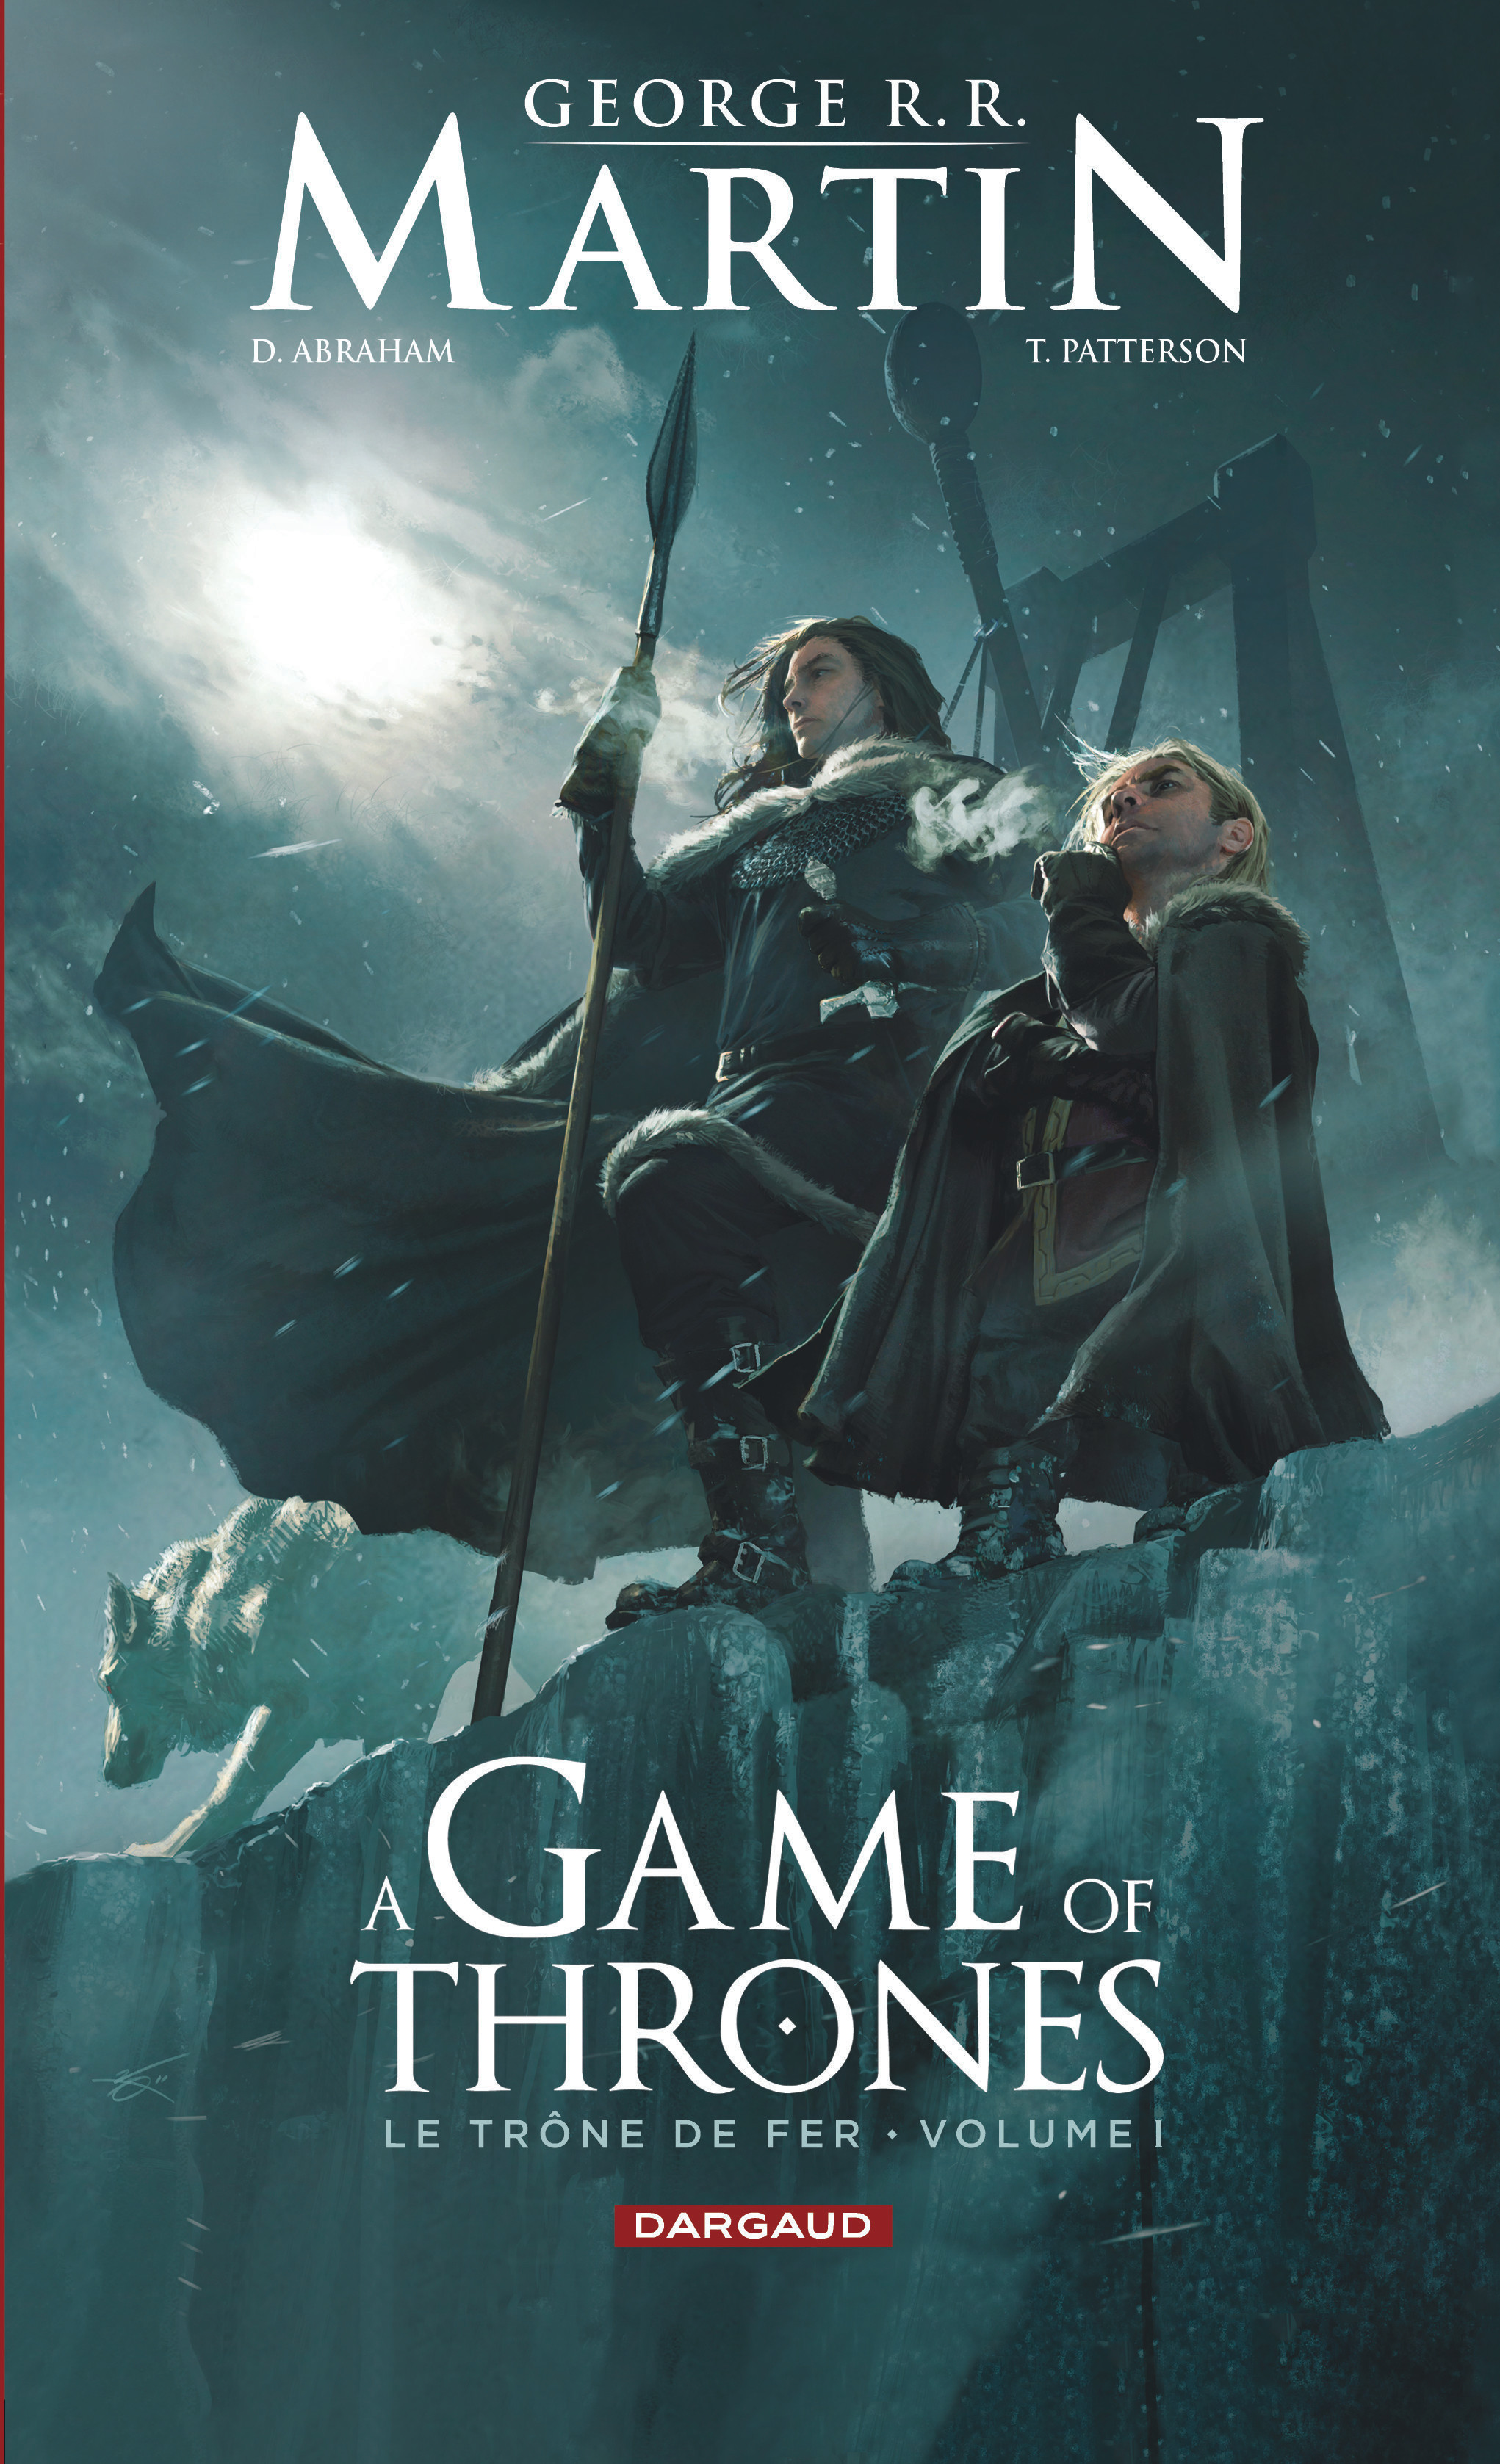 A GAME OF THRONES-LE TRONE FER - GAME OF THRONES (A) - LE TRONE DE FER - TOME 1 - A GAME OF THRO